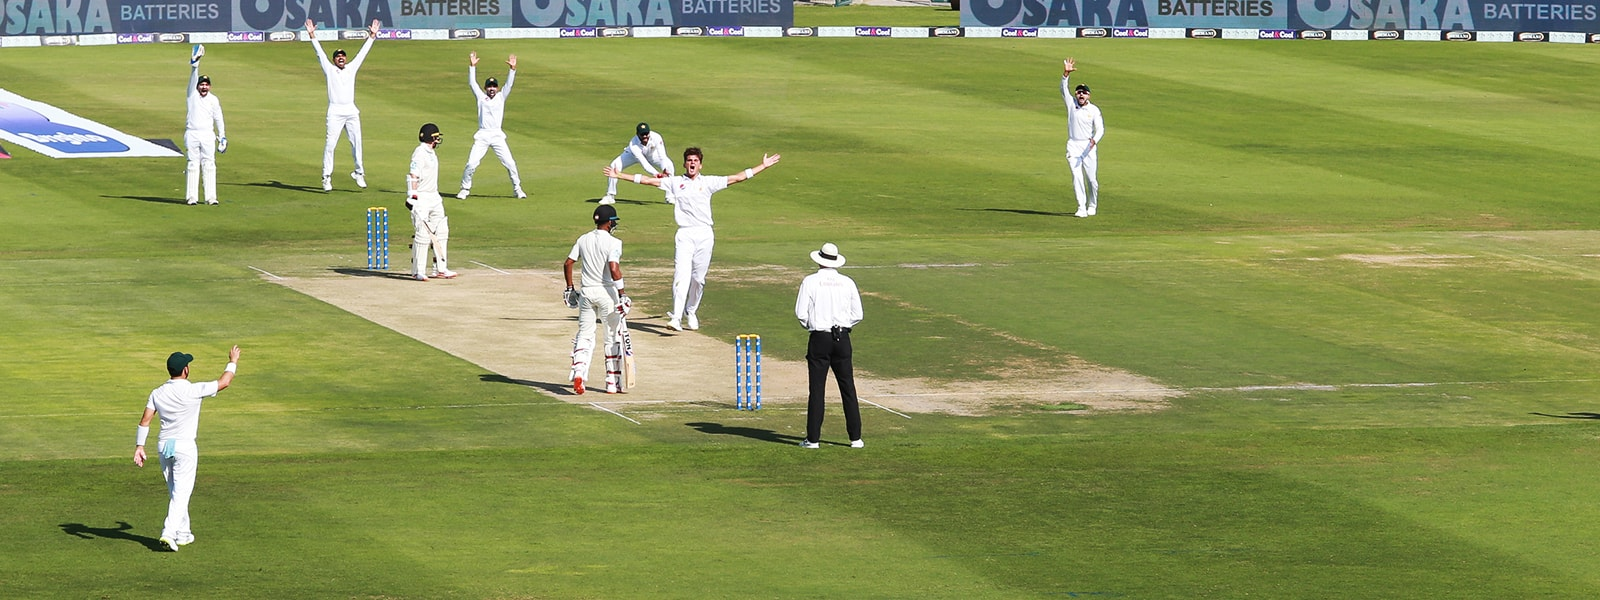 Kiwi's Buckle Before Lunch As Shah Rips Through Top Order